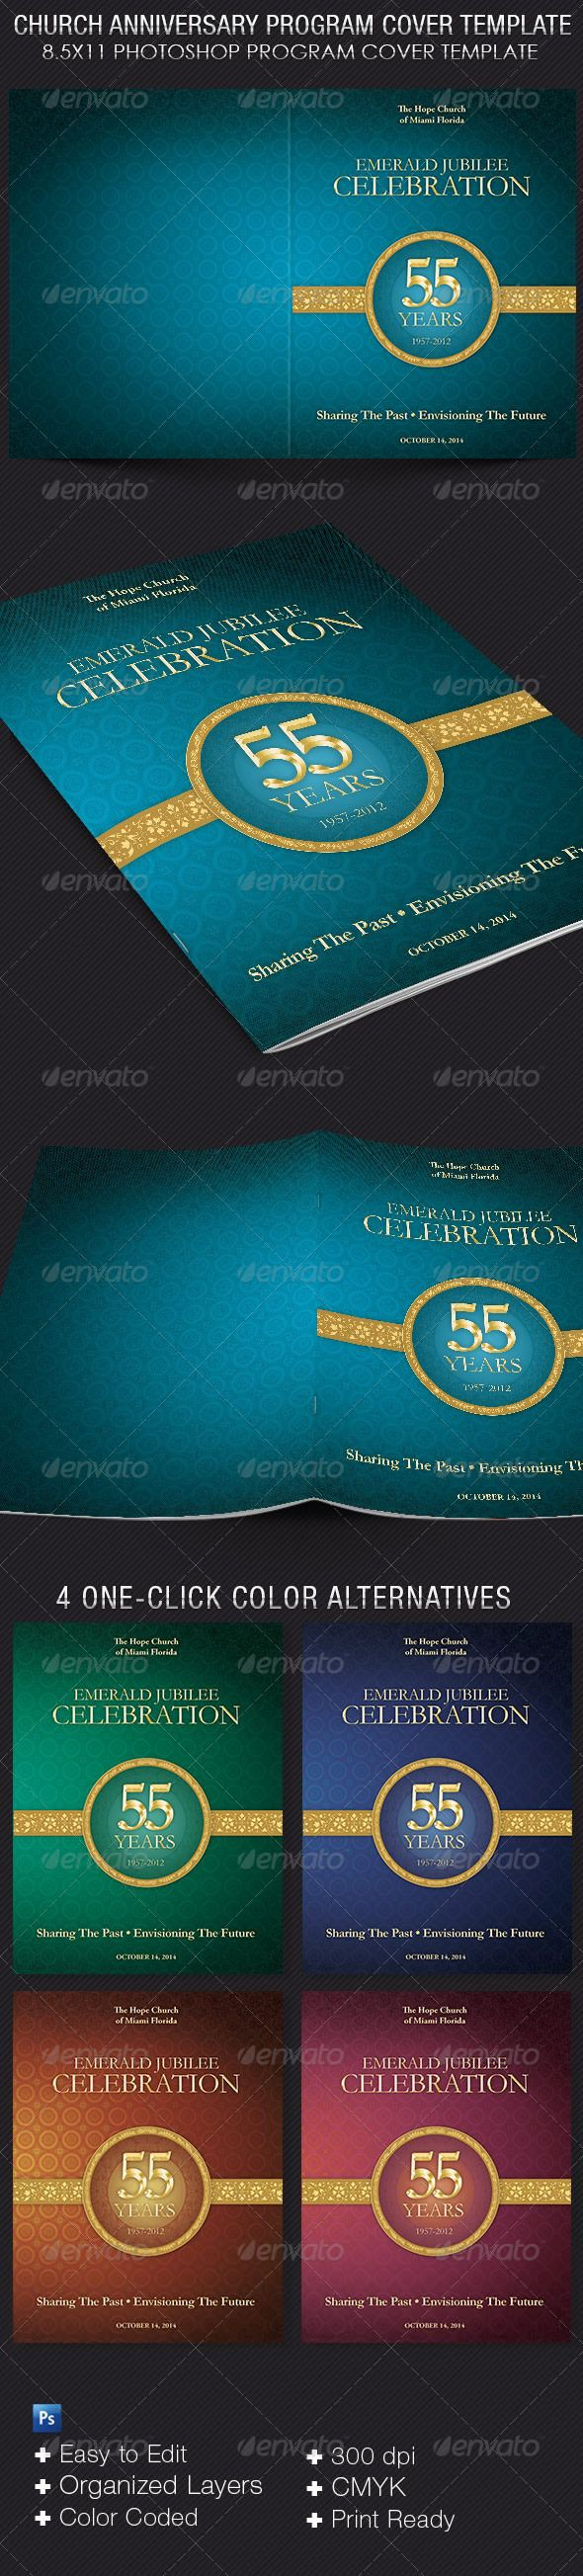 Church Anniversary Program Cover Template Pastor